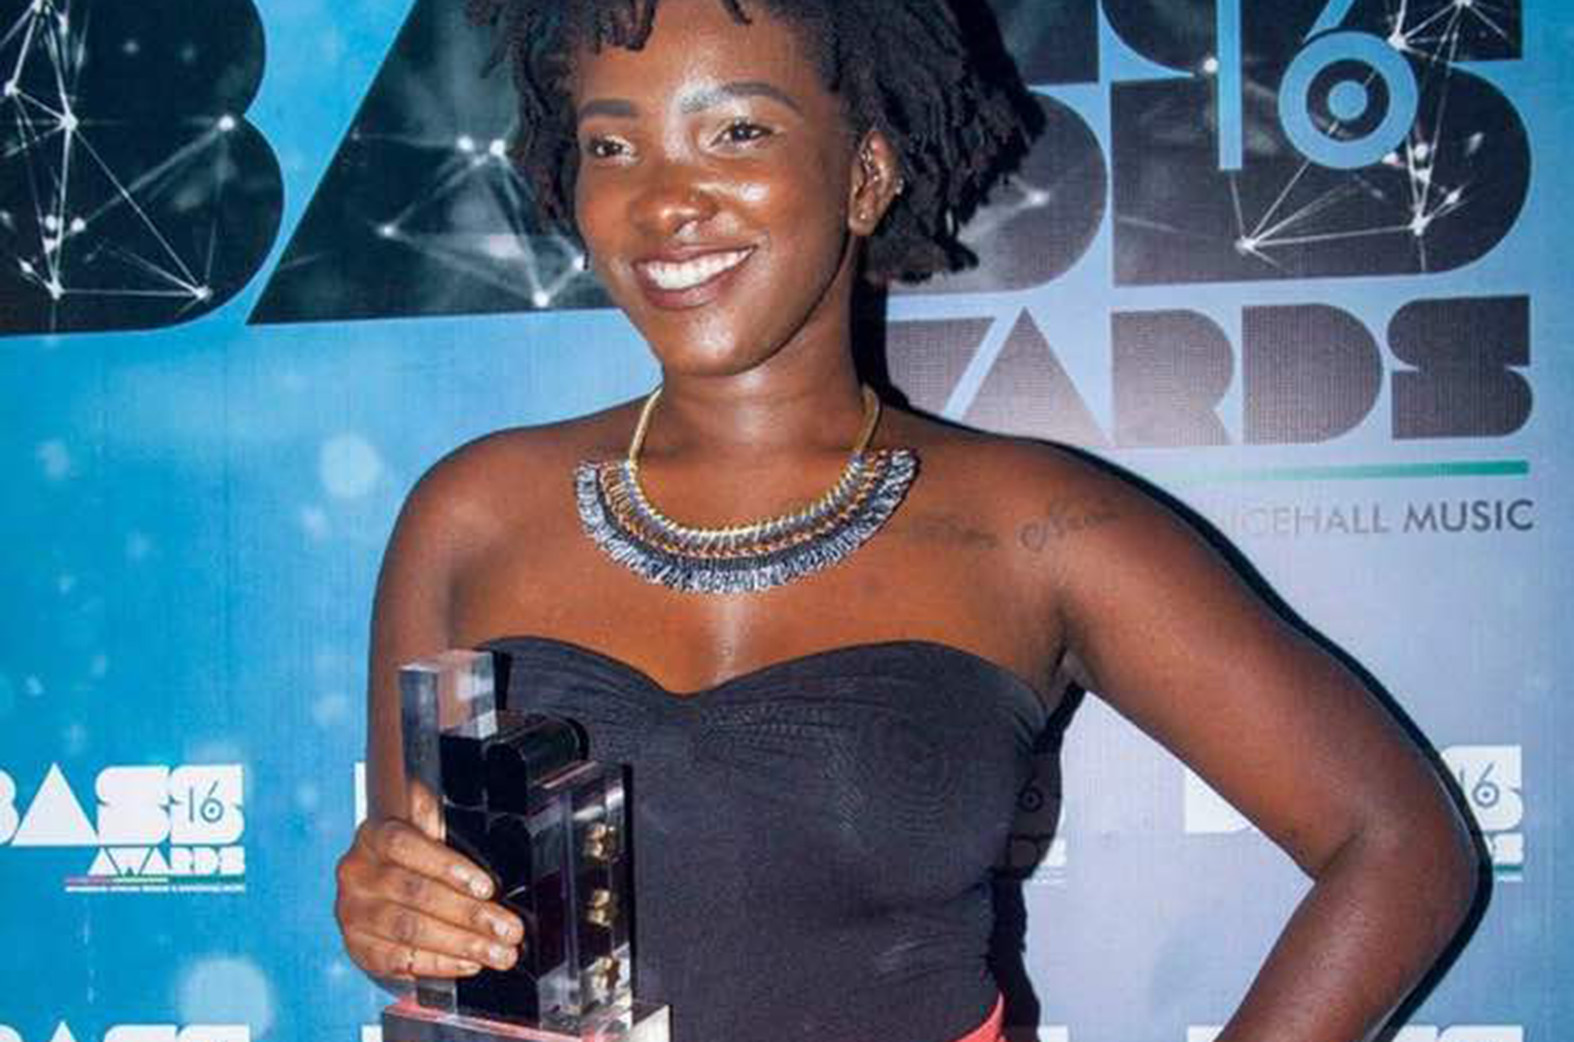 BASS Awards pays tribute to Ebony Reigns